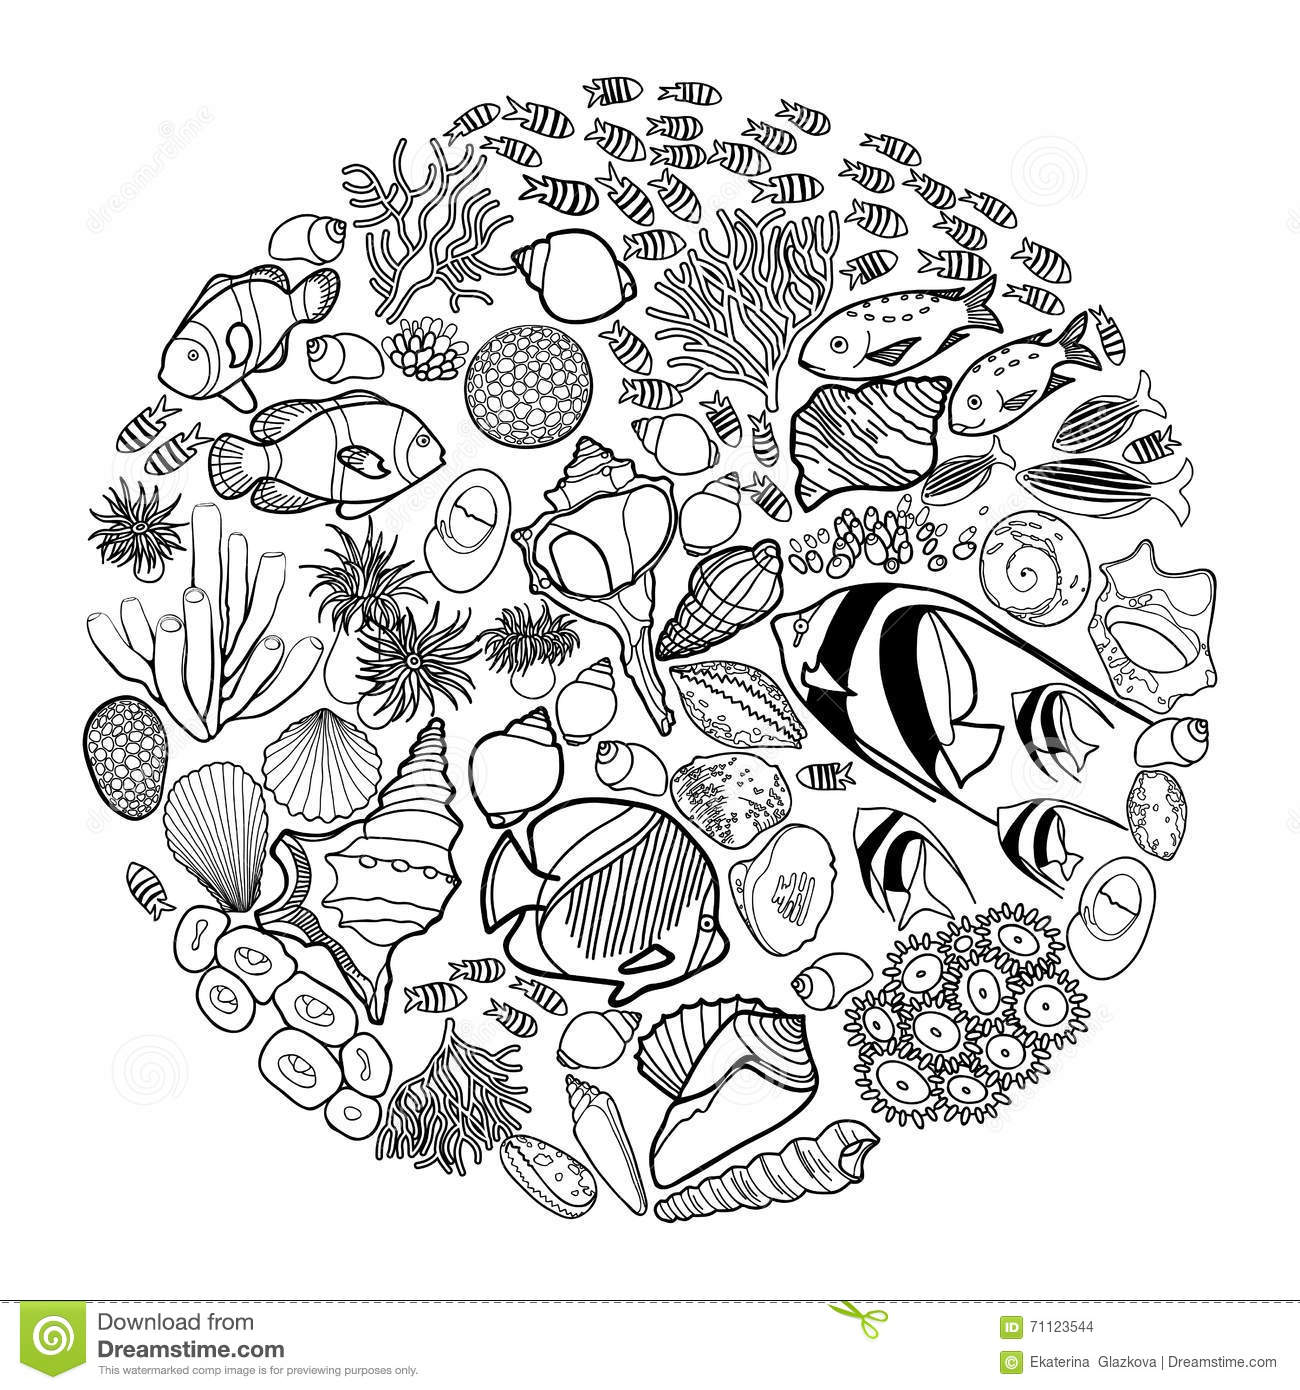 ocean backround coloring pages - photo #22